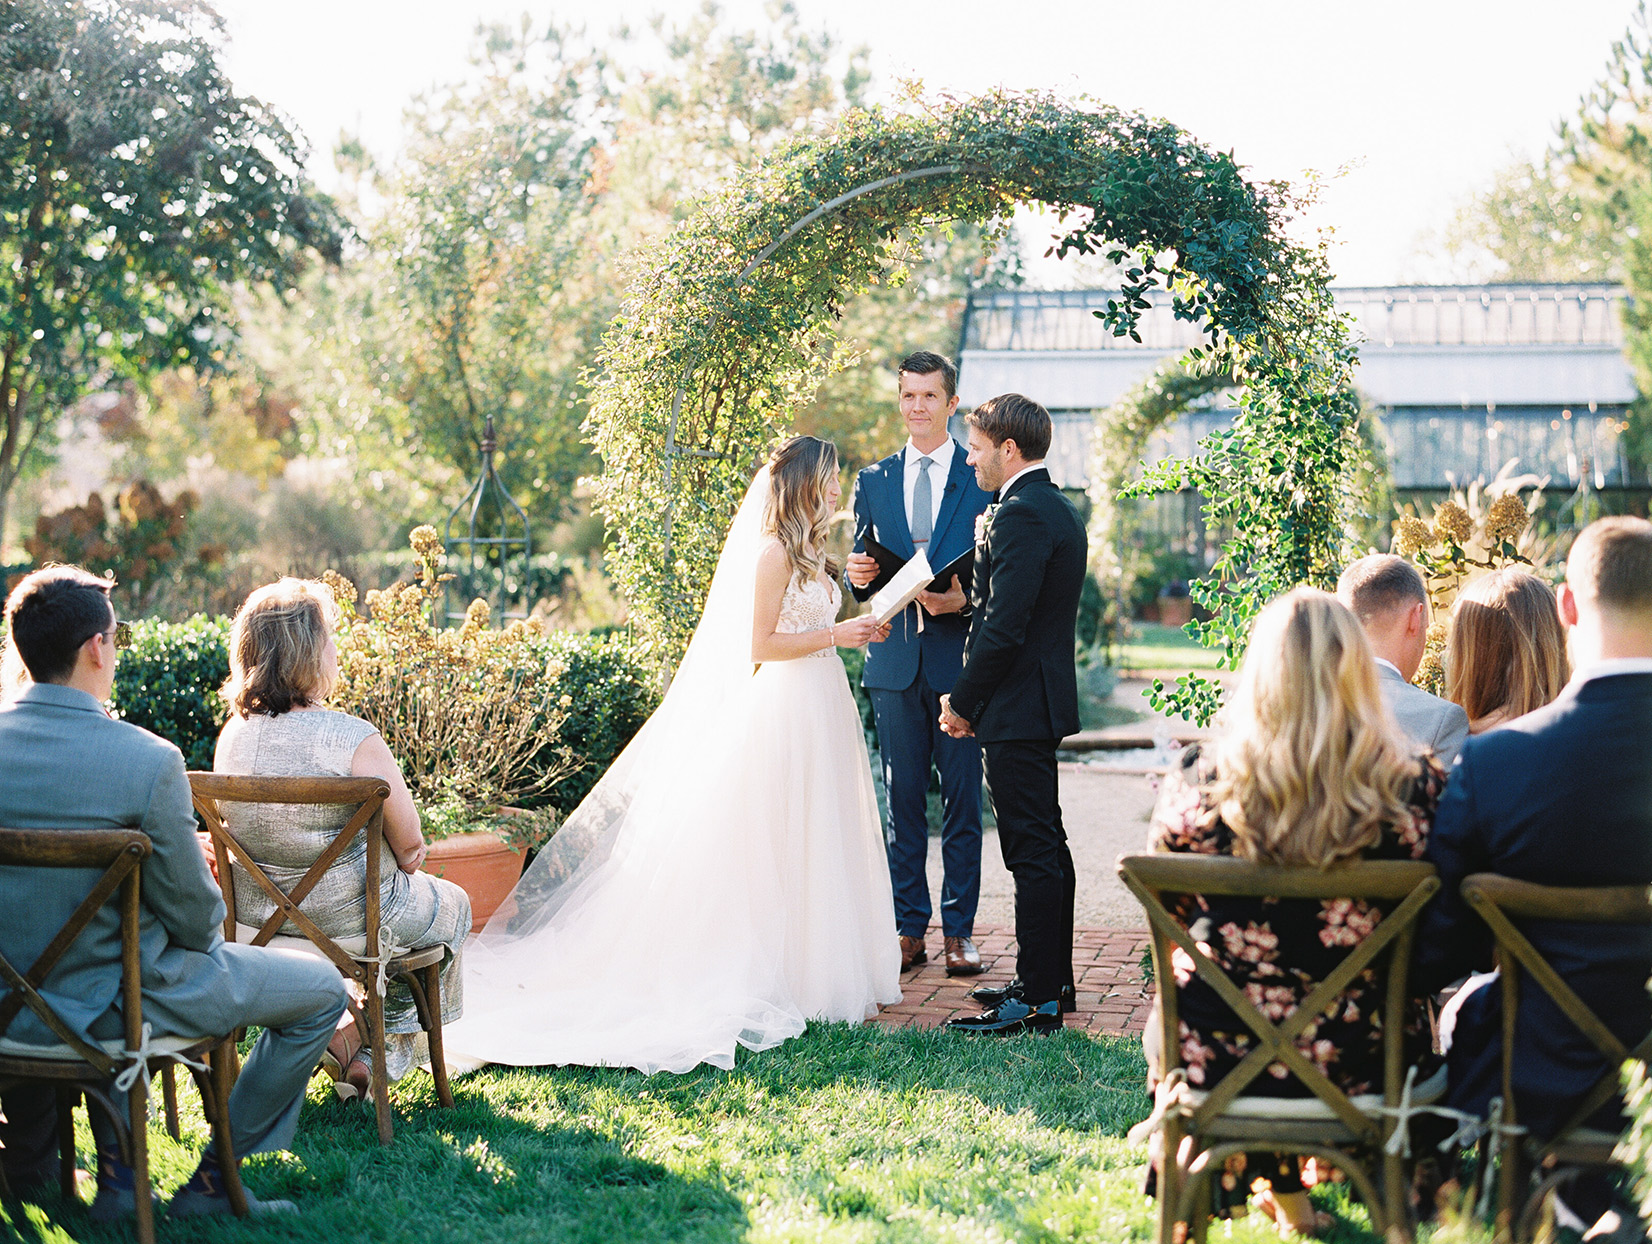 bride and groom exchanging vows in intimate garden ceremony